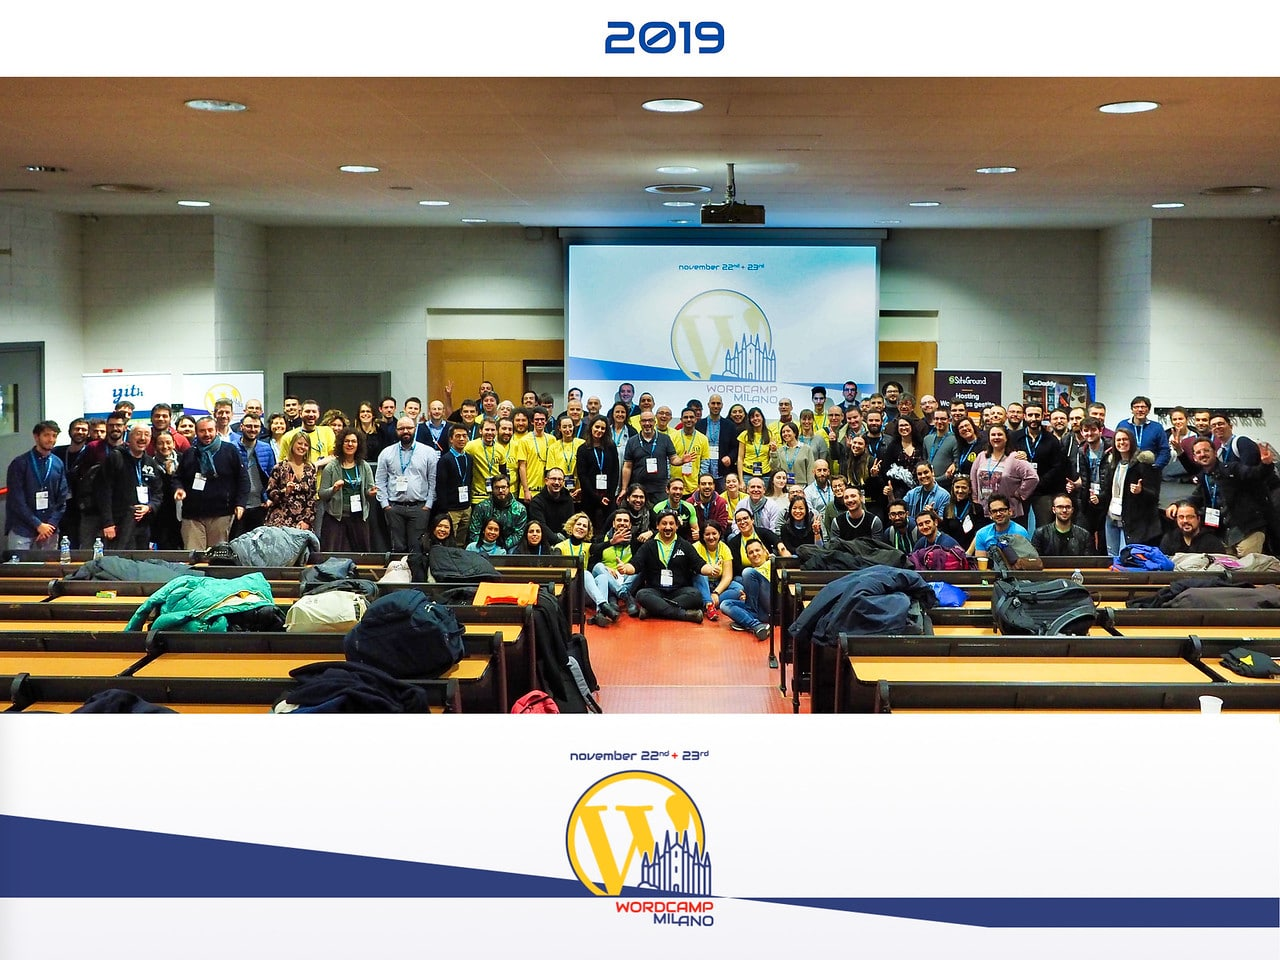 WordCamp Milano 2019